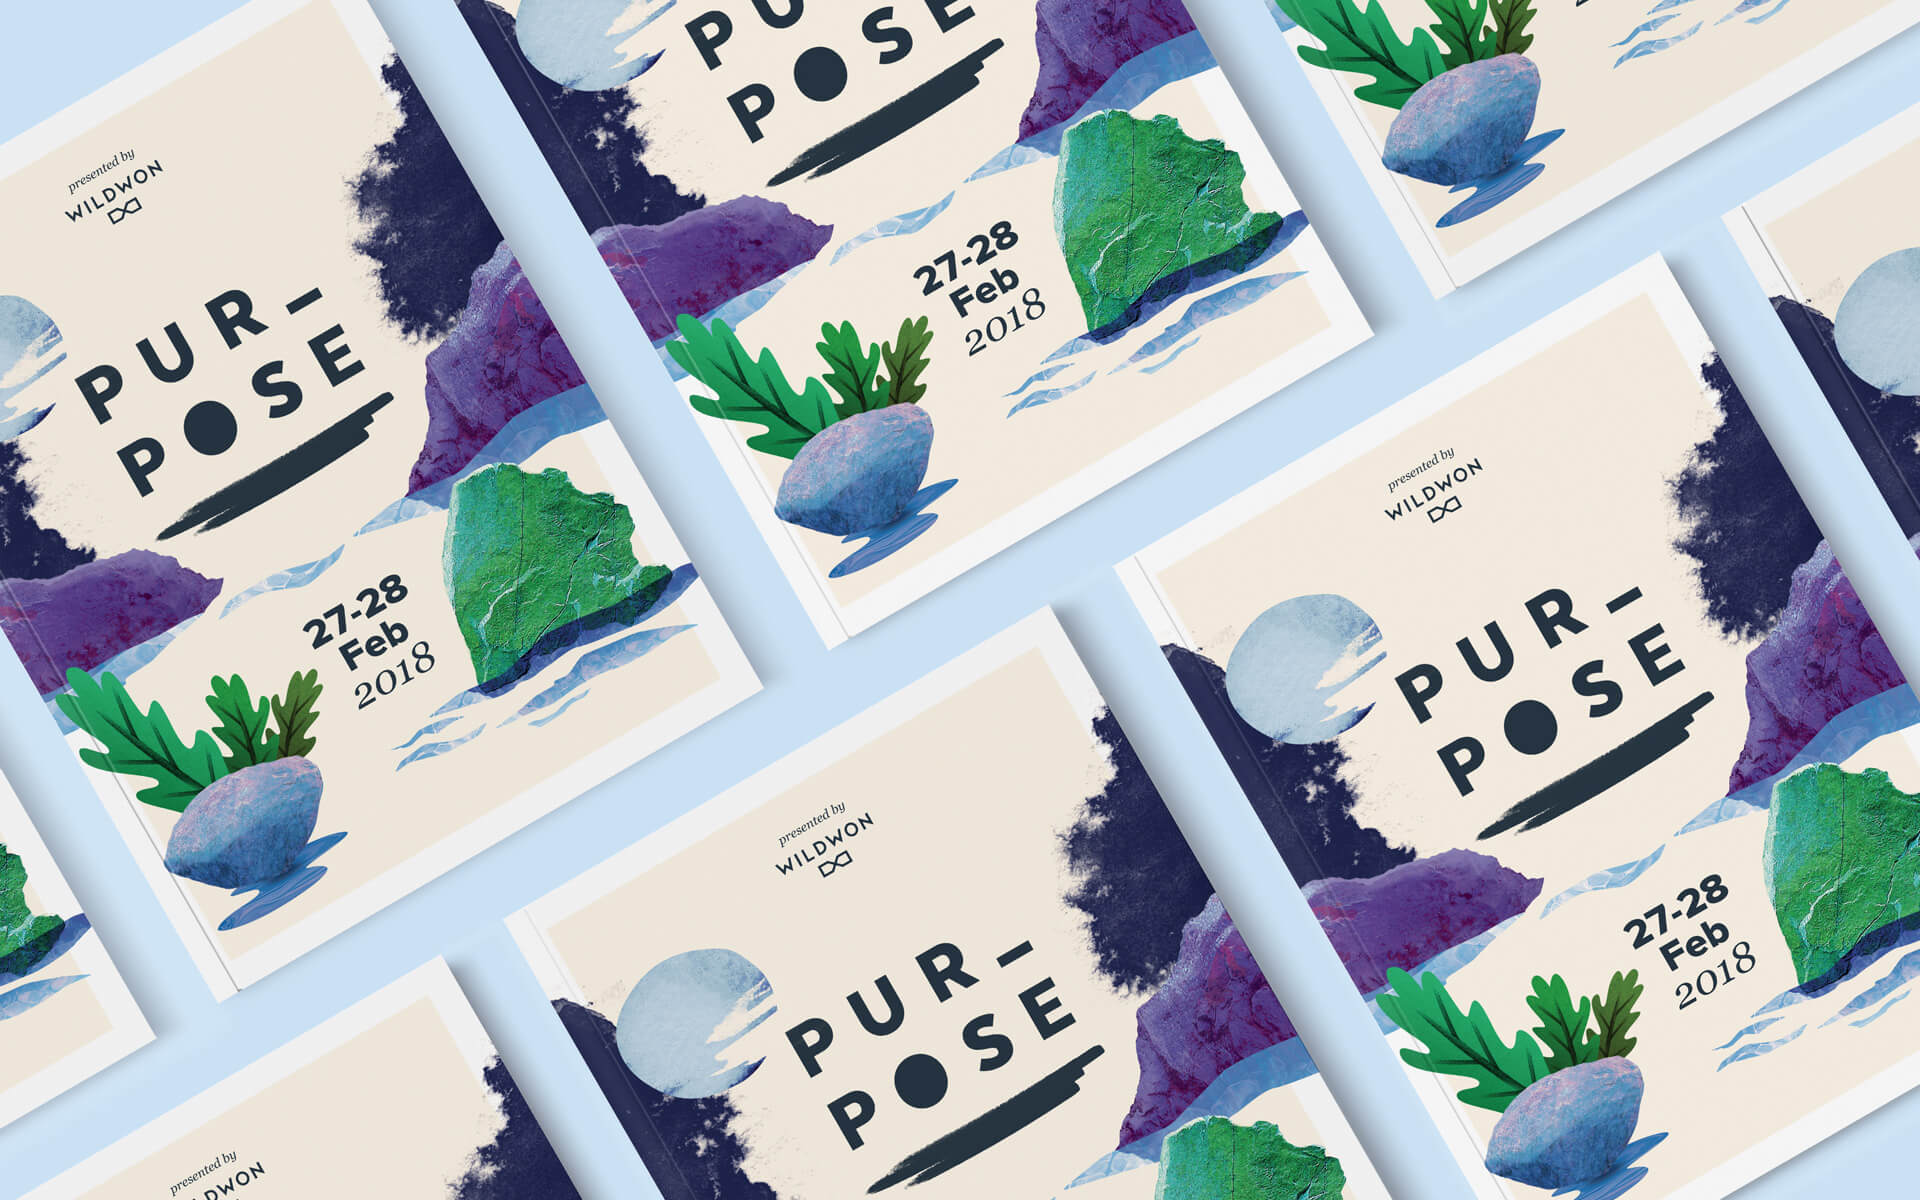 Pupose 2018 program cover designs.